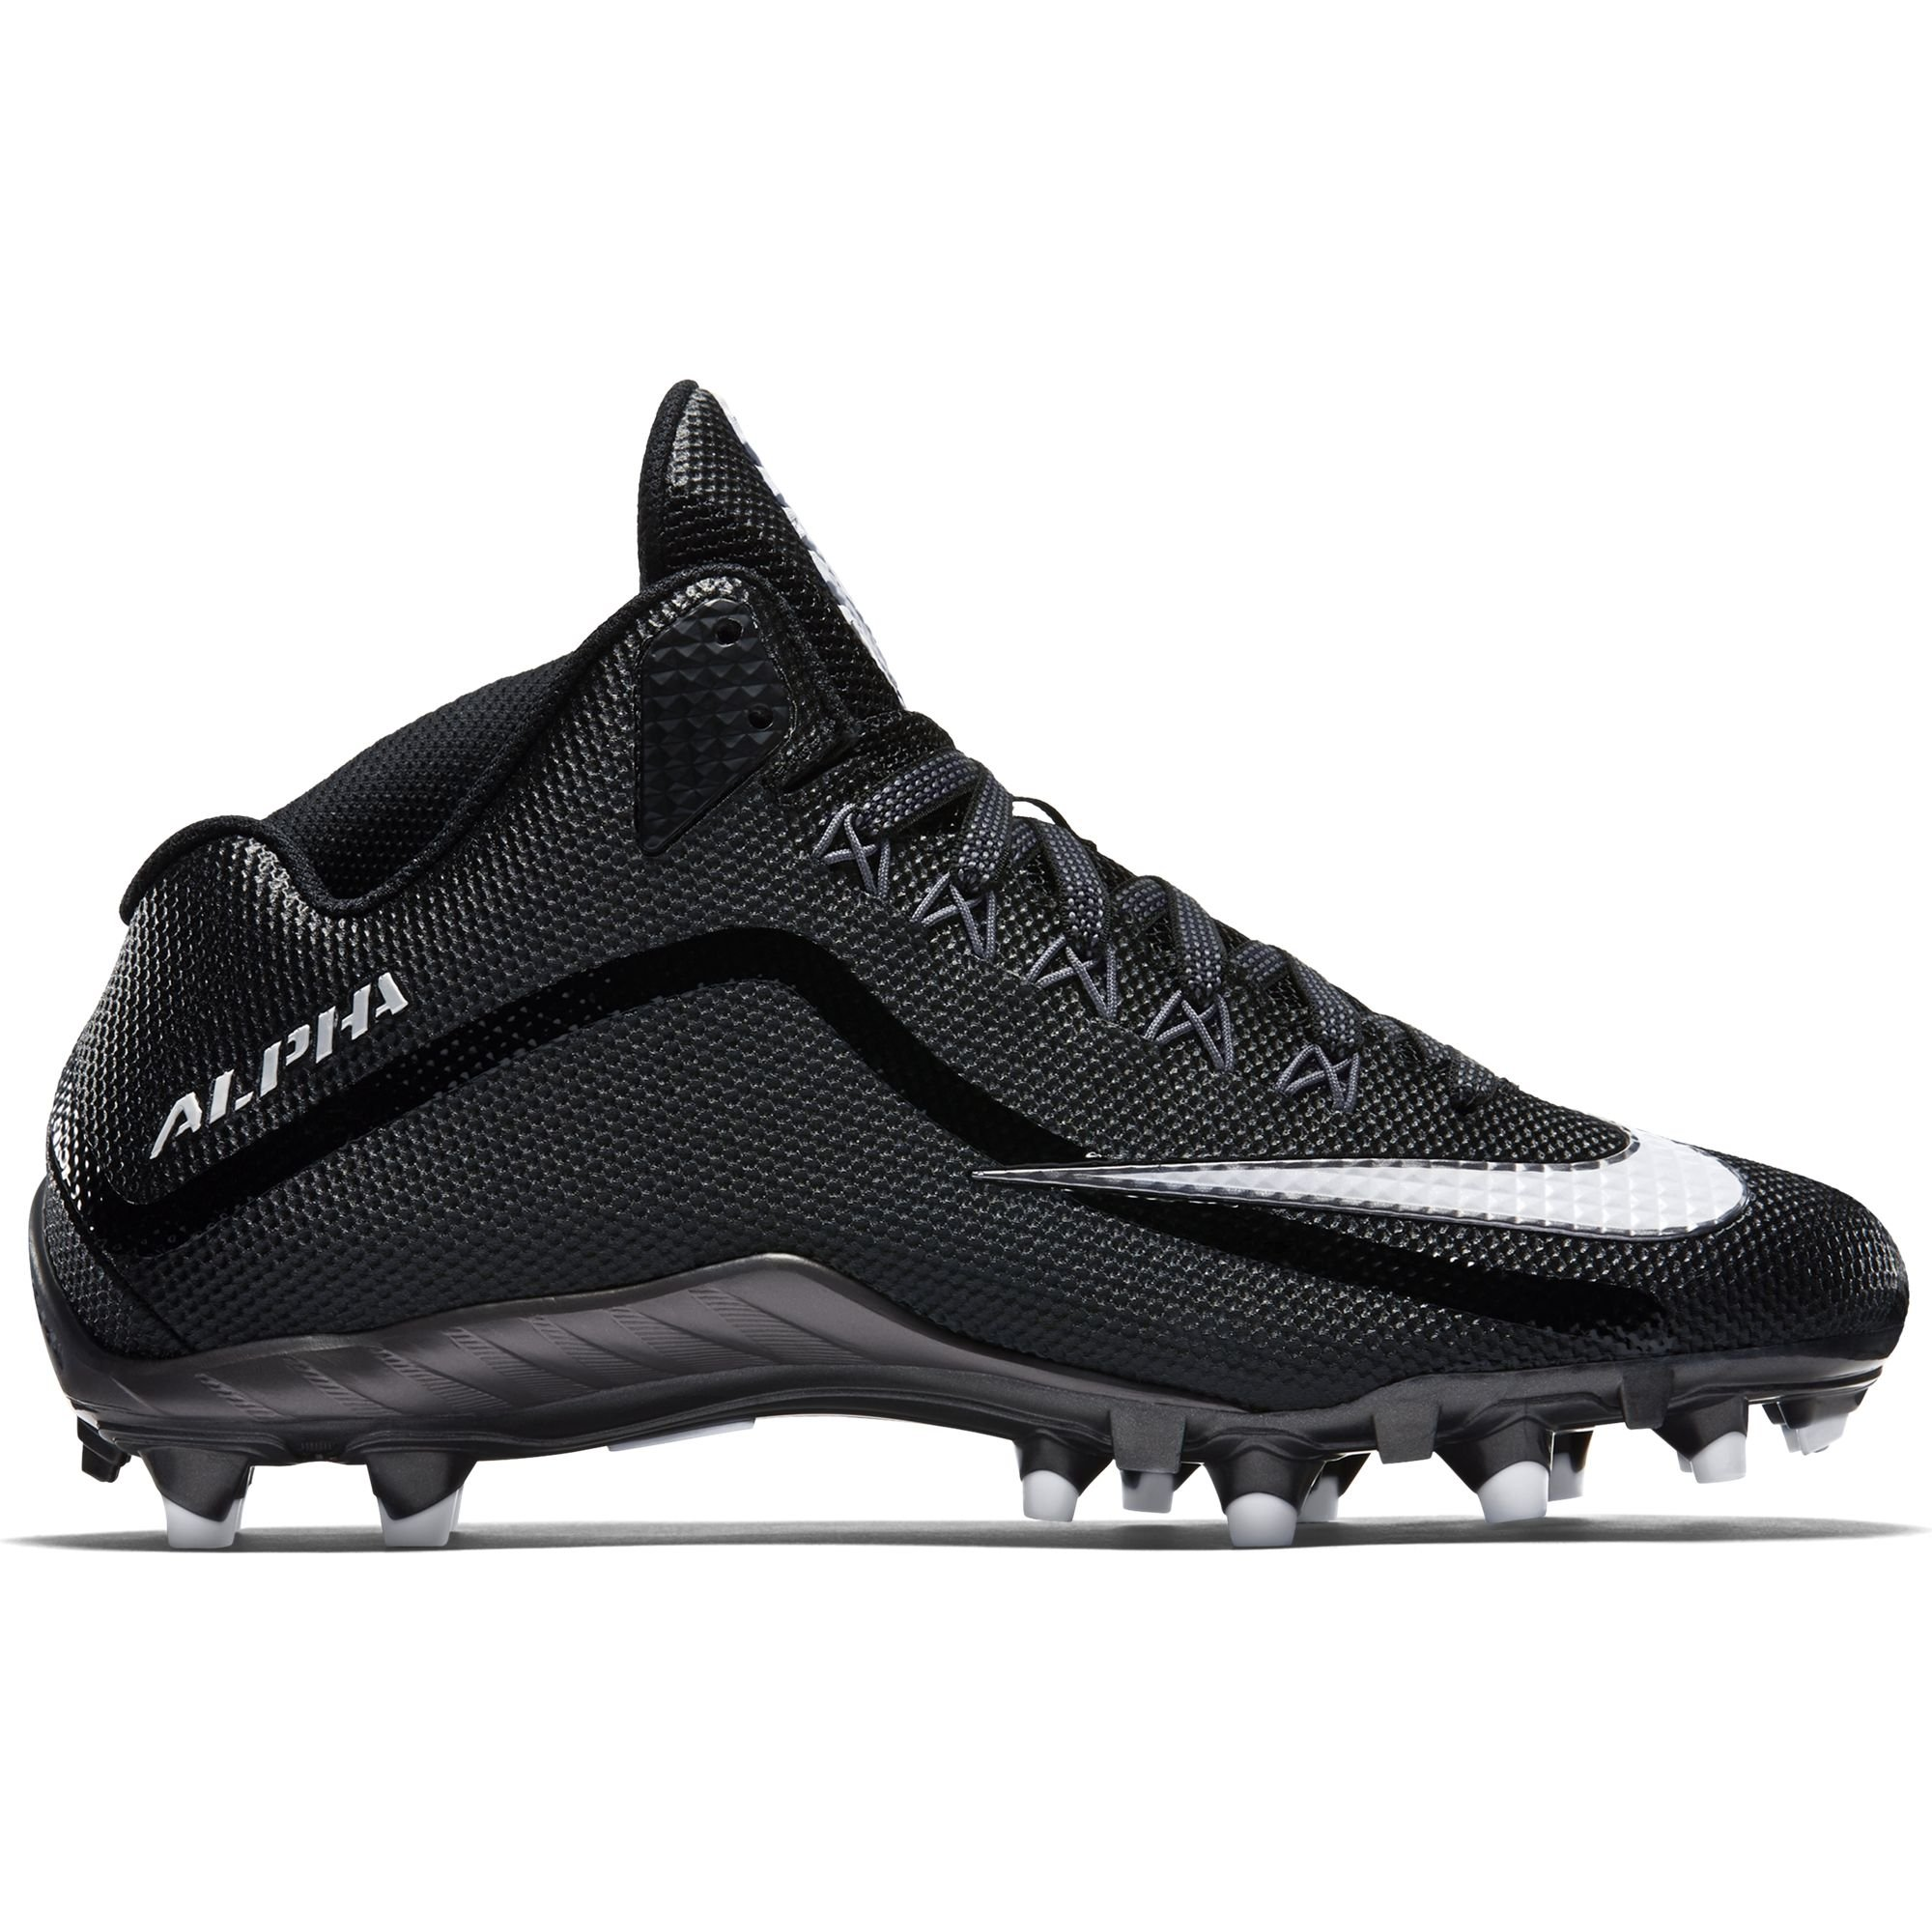 Nike Mens Alpha Pro 2 3/4 TD Football Cleats 719927-010 (Black/Metallic Dark Grey/White, 10.5 D(M) US)